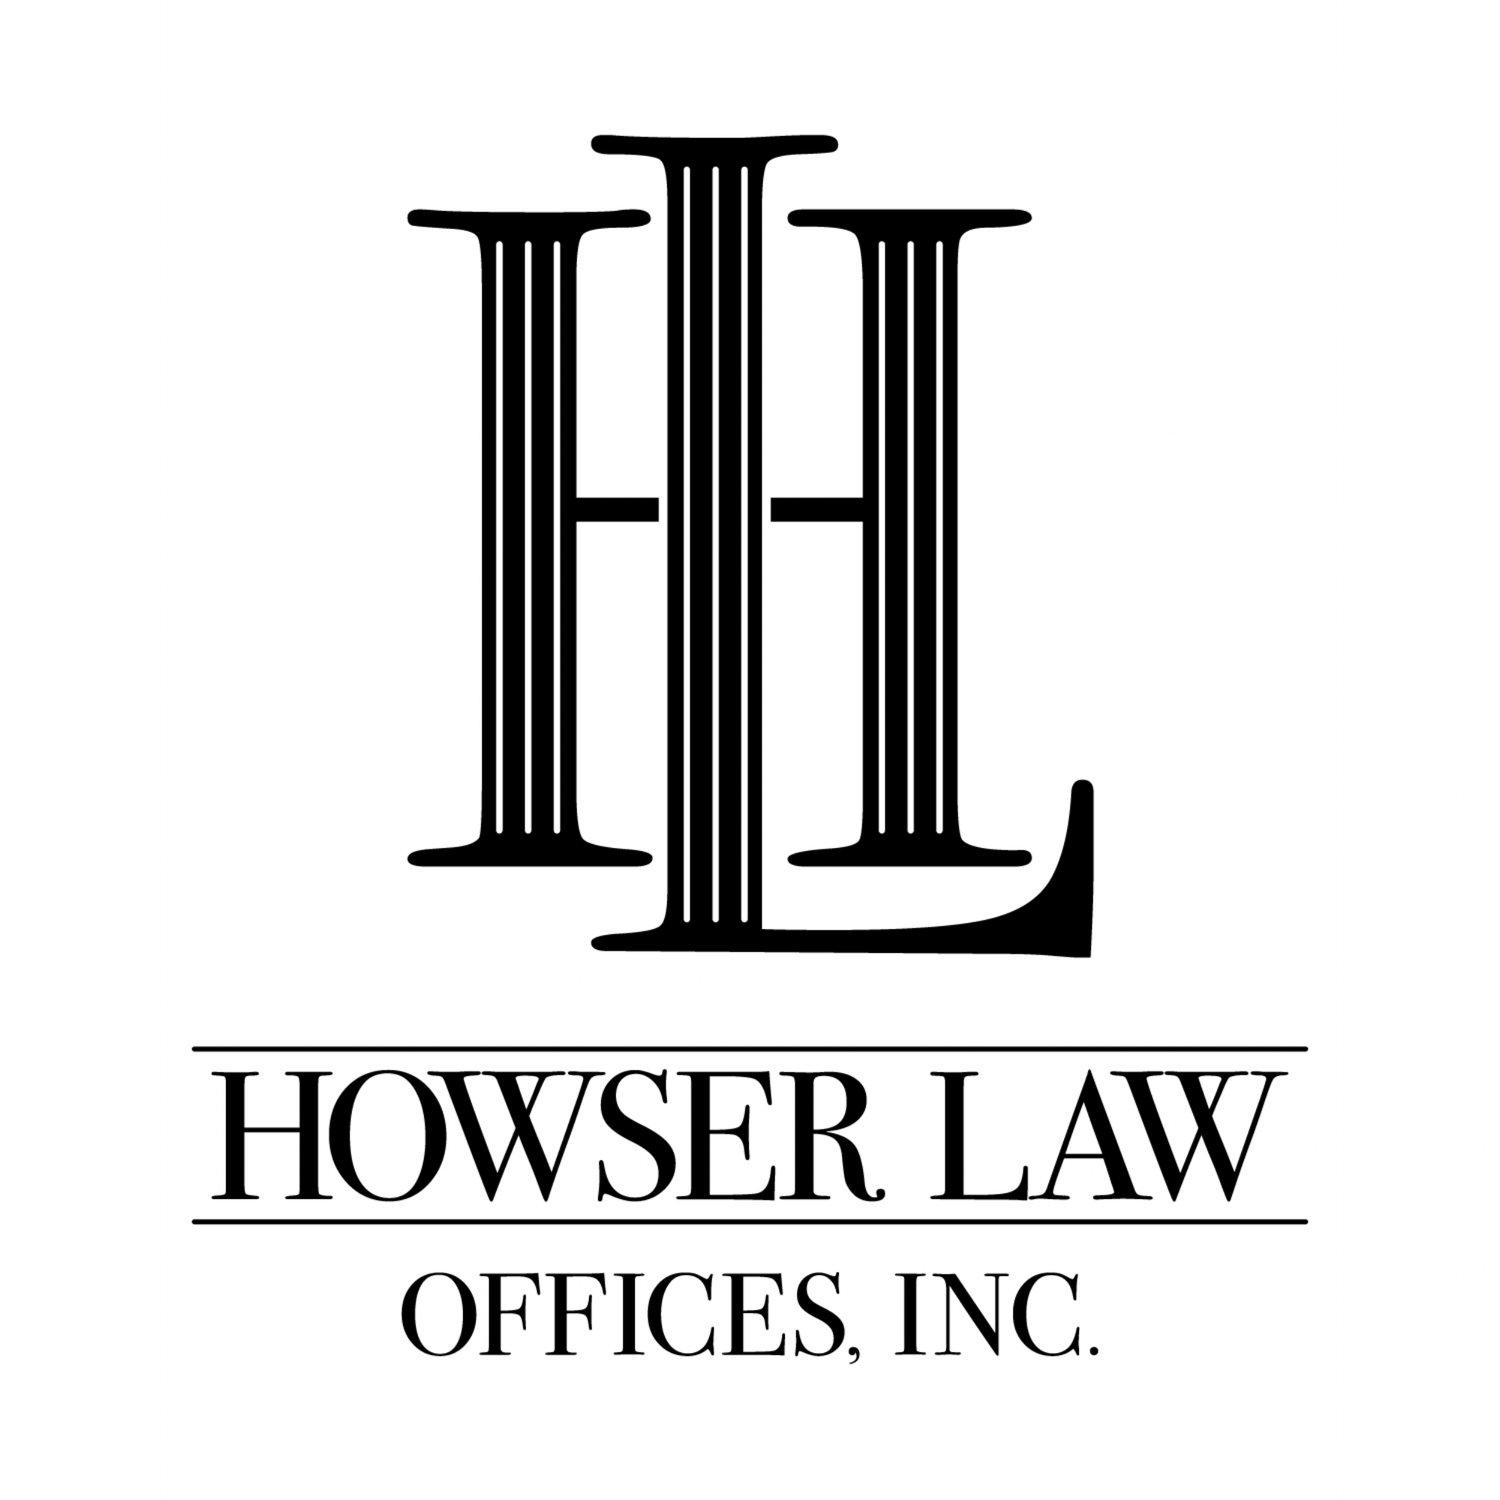 Howser Law Offices, Inc.